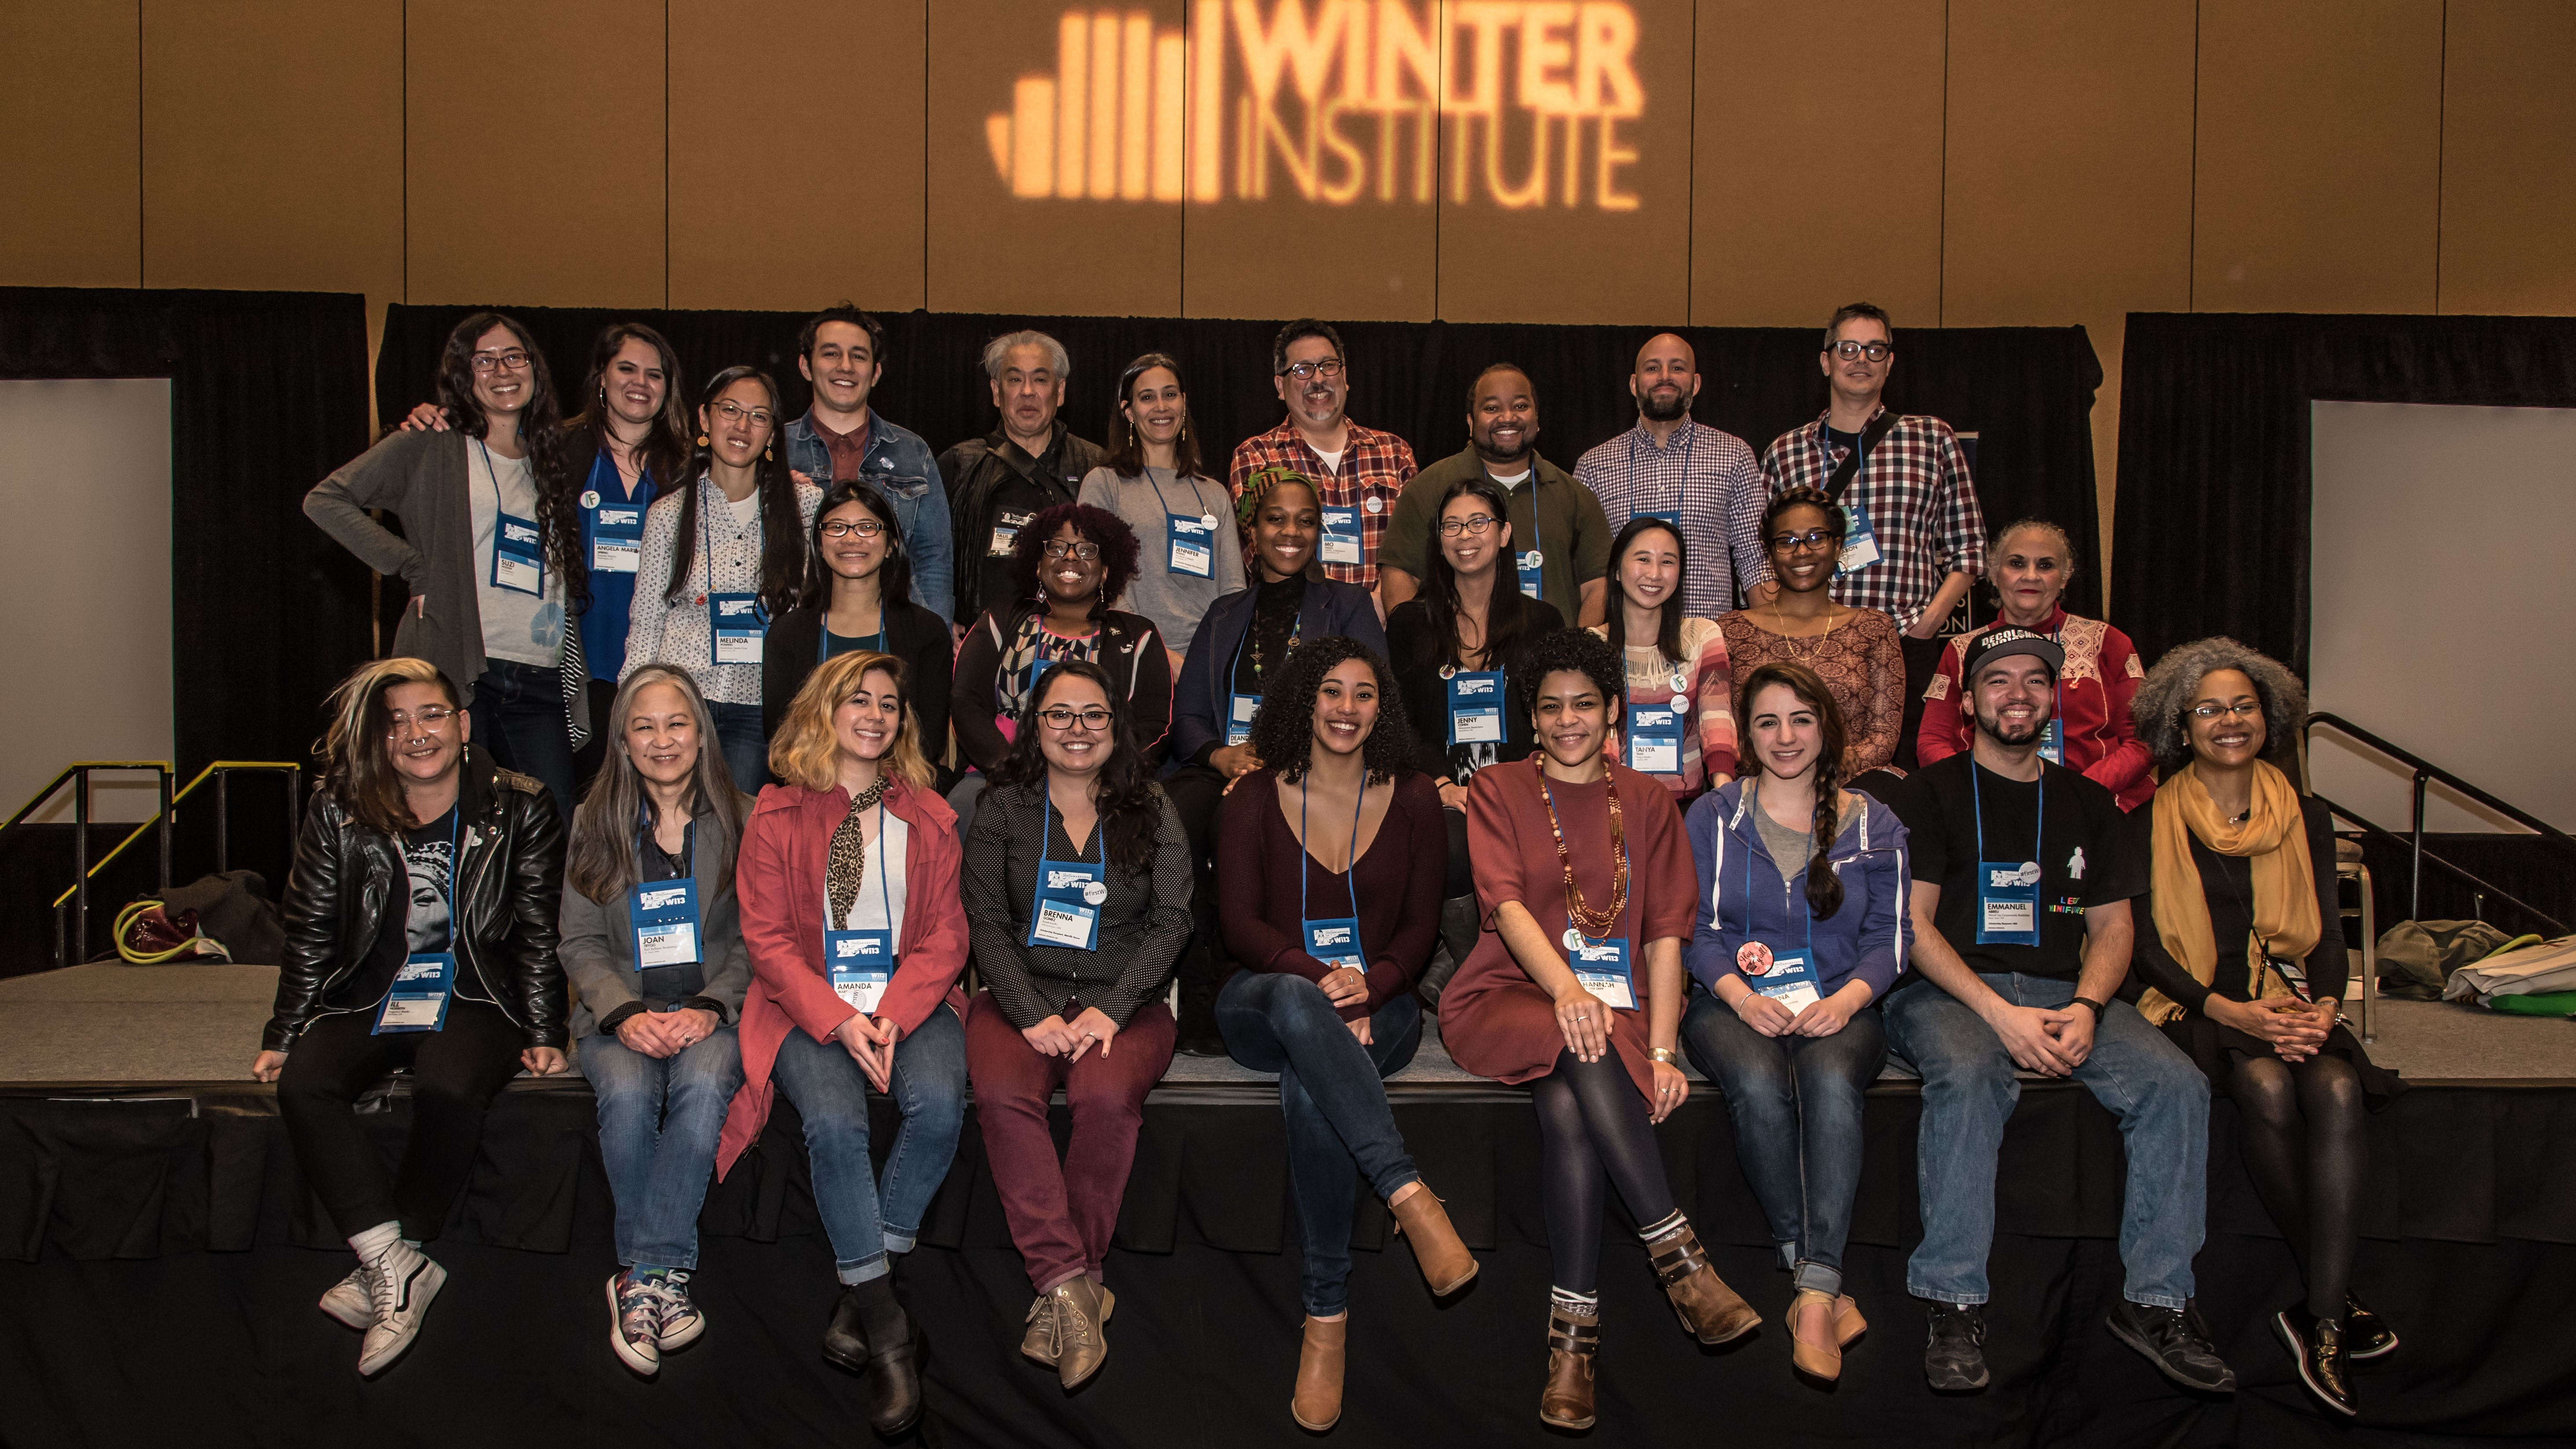 ABA member booksellers posed for a photo celebrating the diversity represented at Wi13.